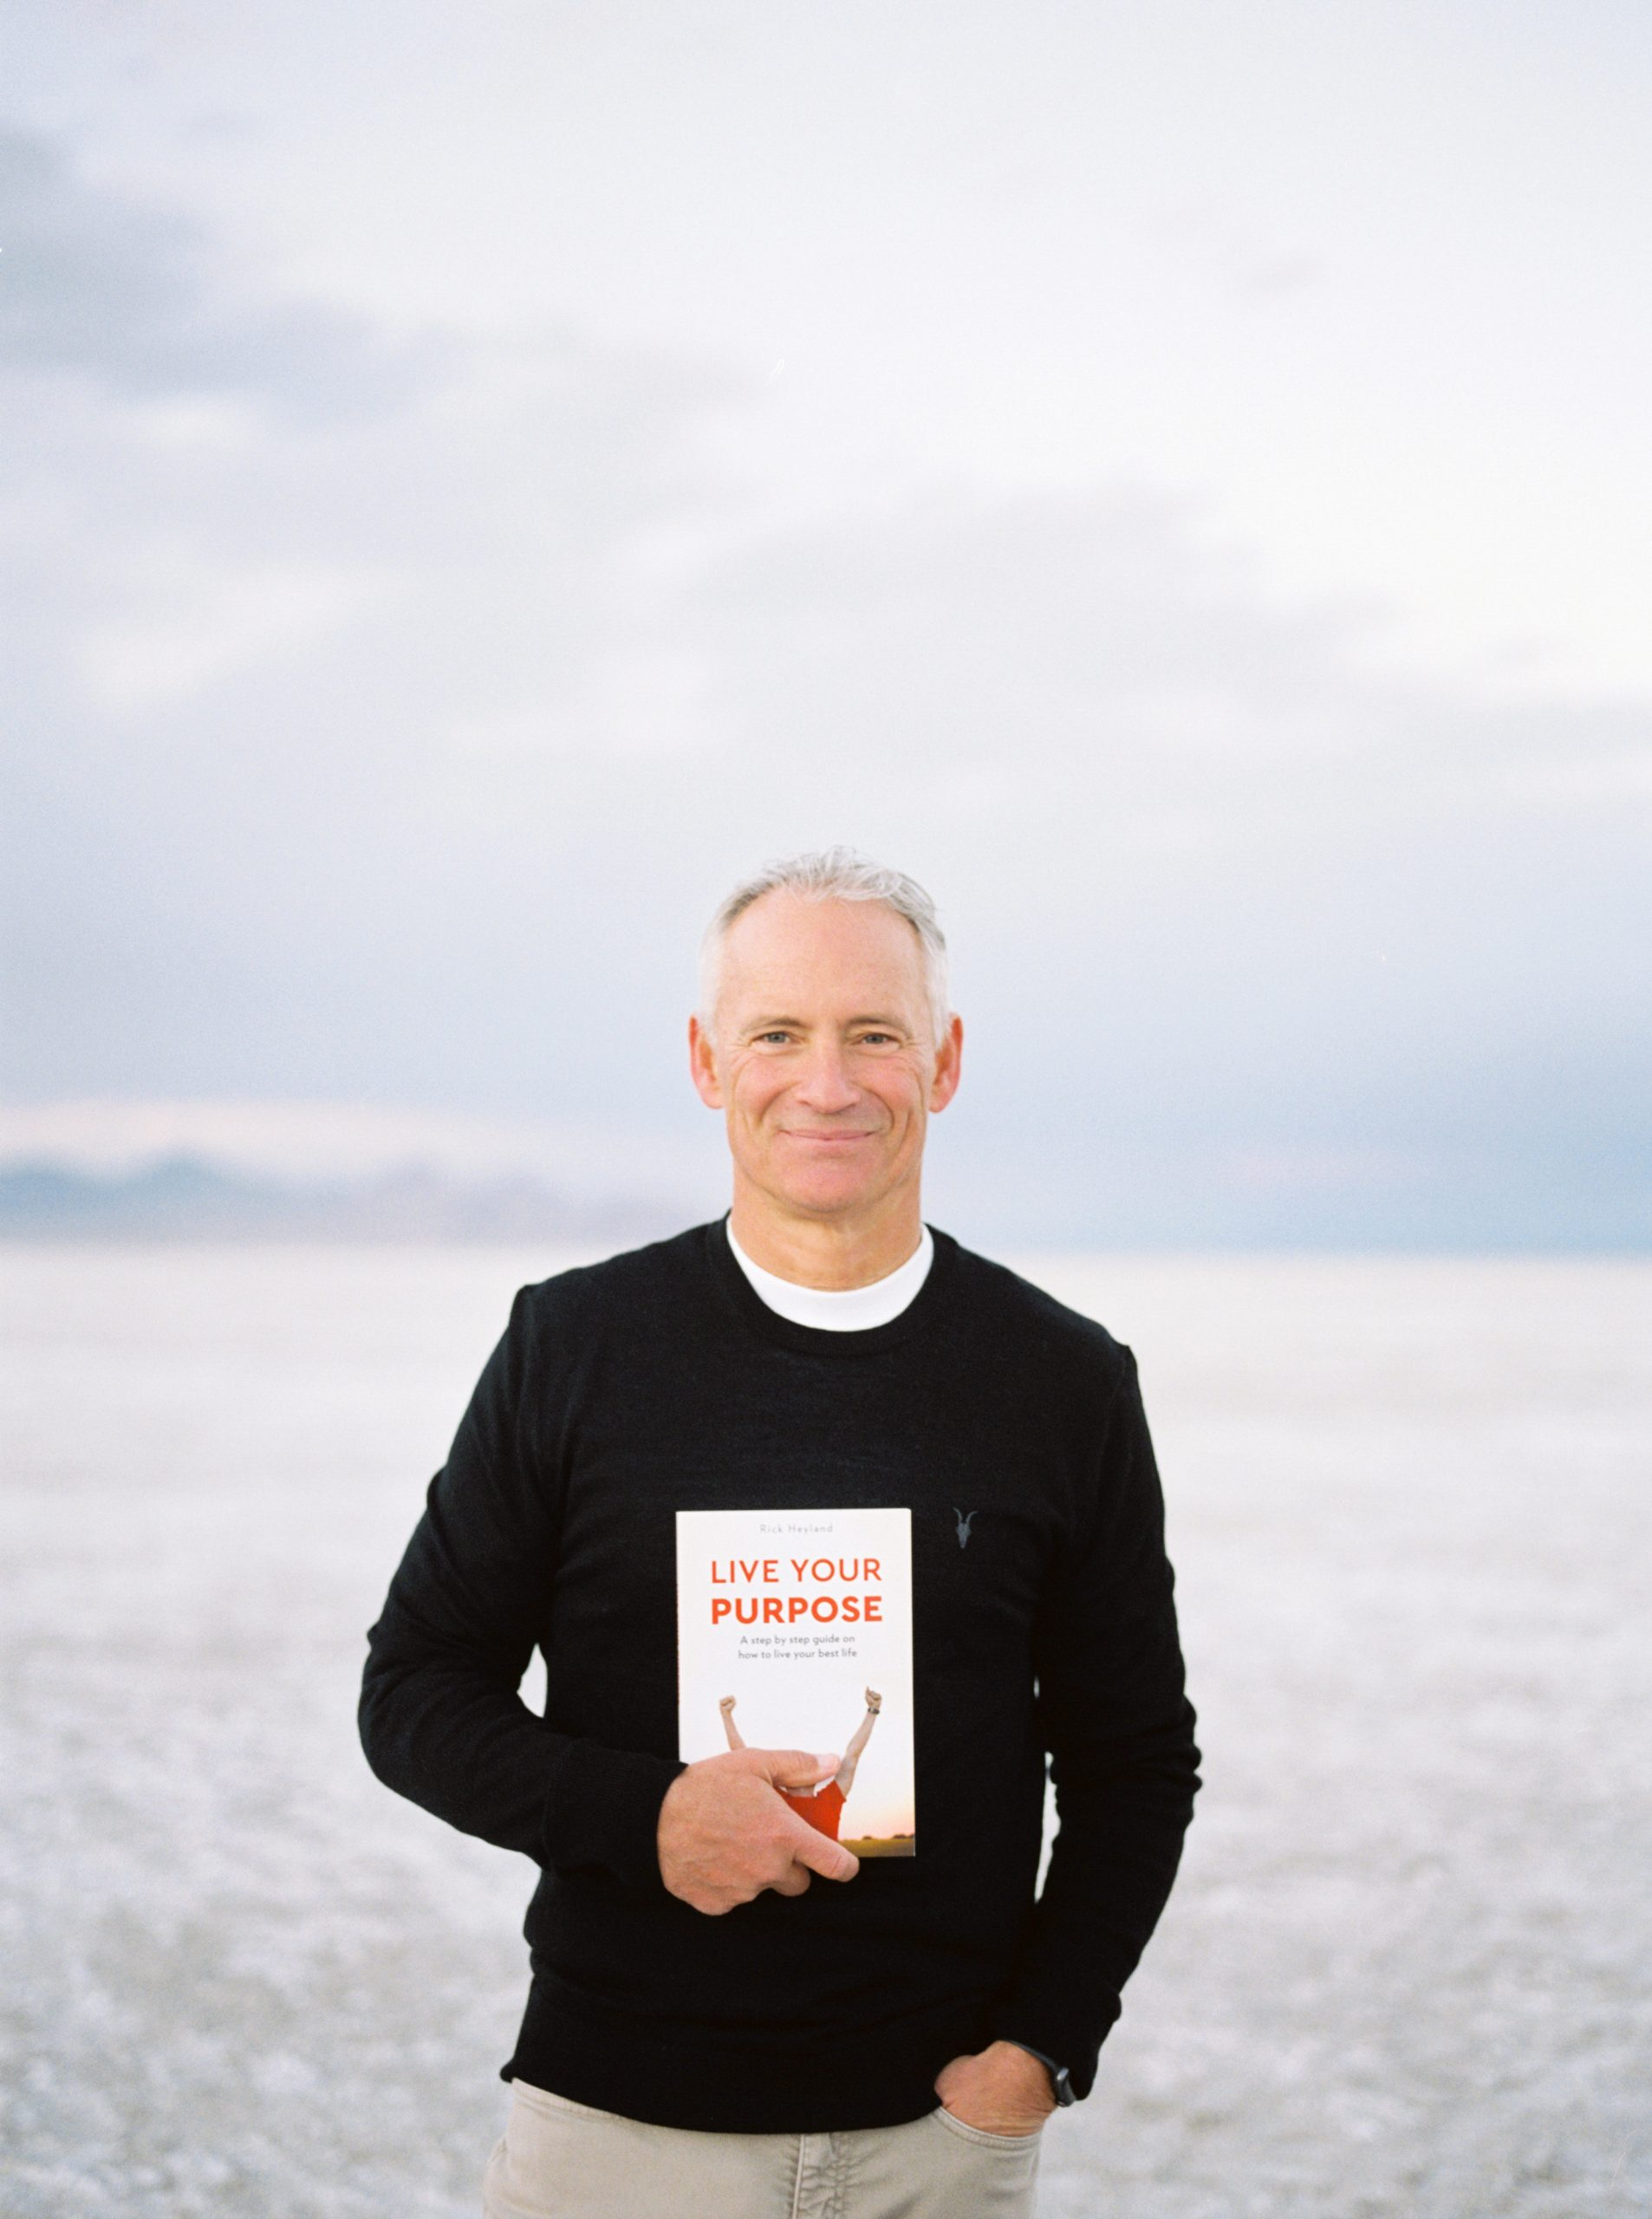 Rick Heyland at the beach holding a copy of Live Your Purpose